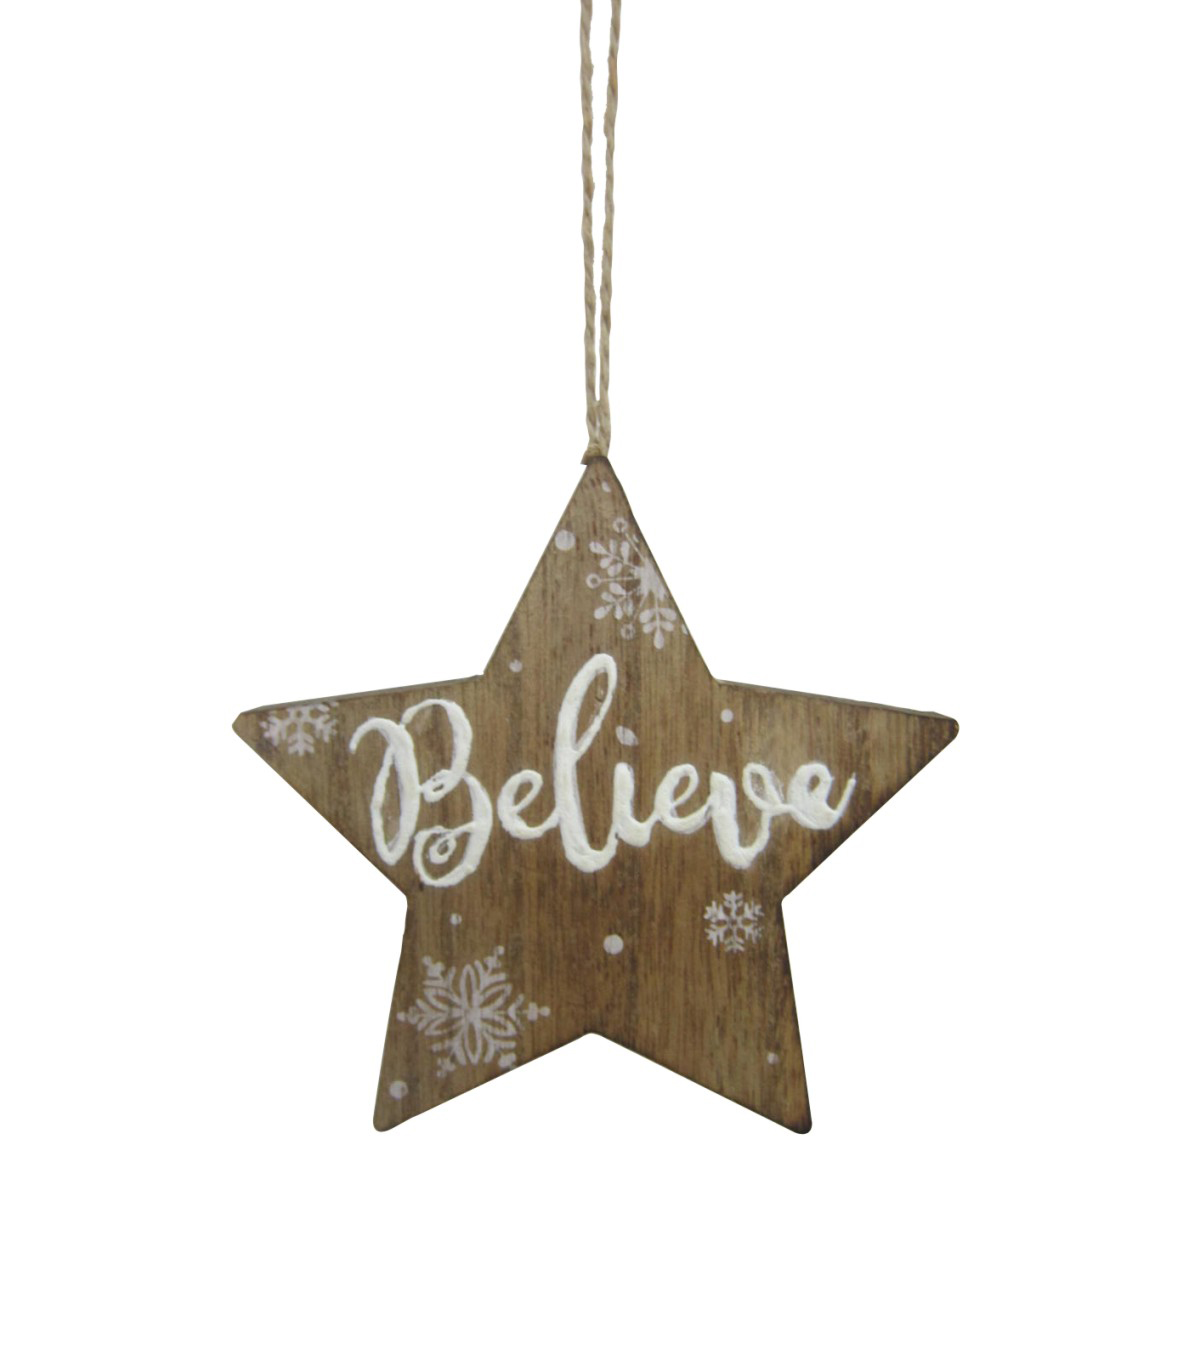 Maker\u0027s Holiday Christmas Handmade Holiday Wood Star Ornament-Believe